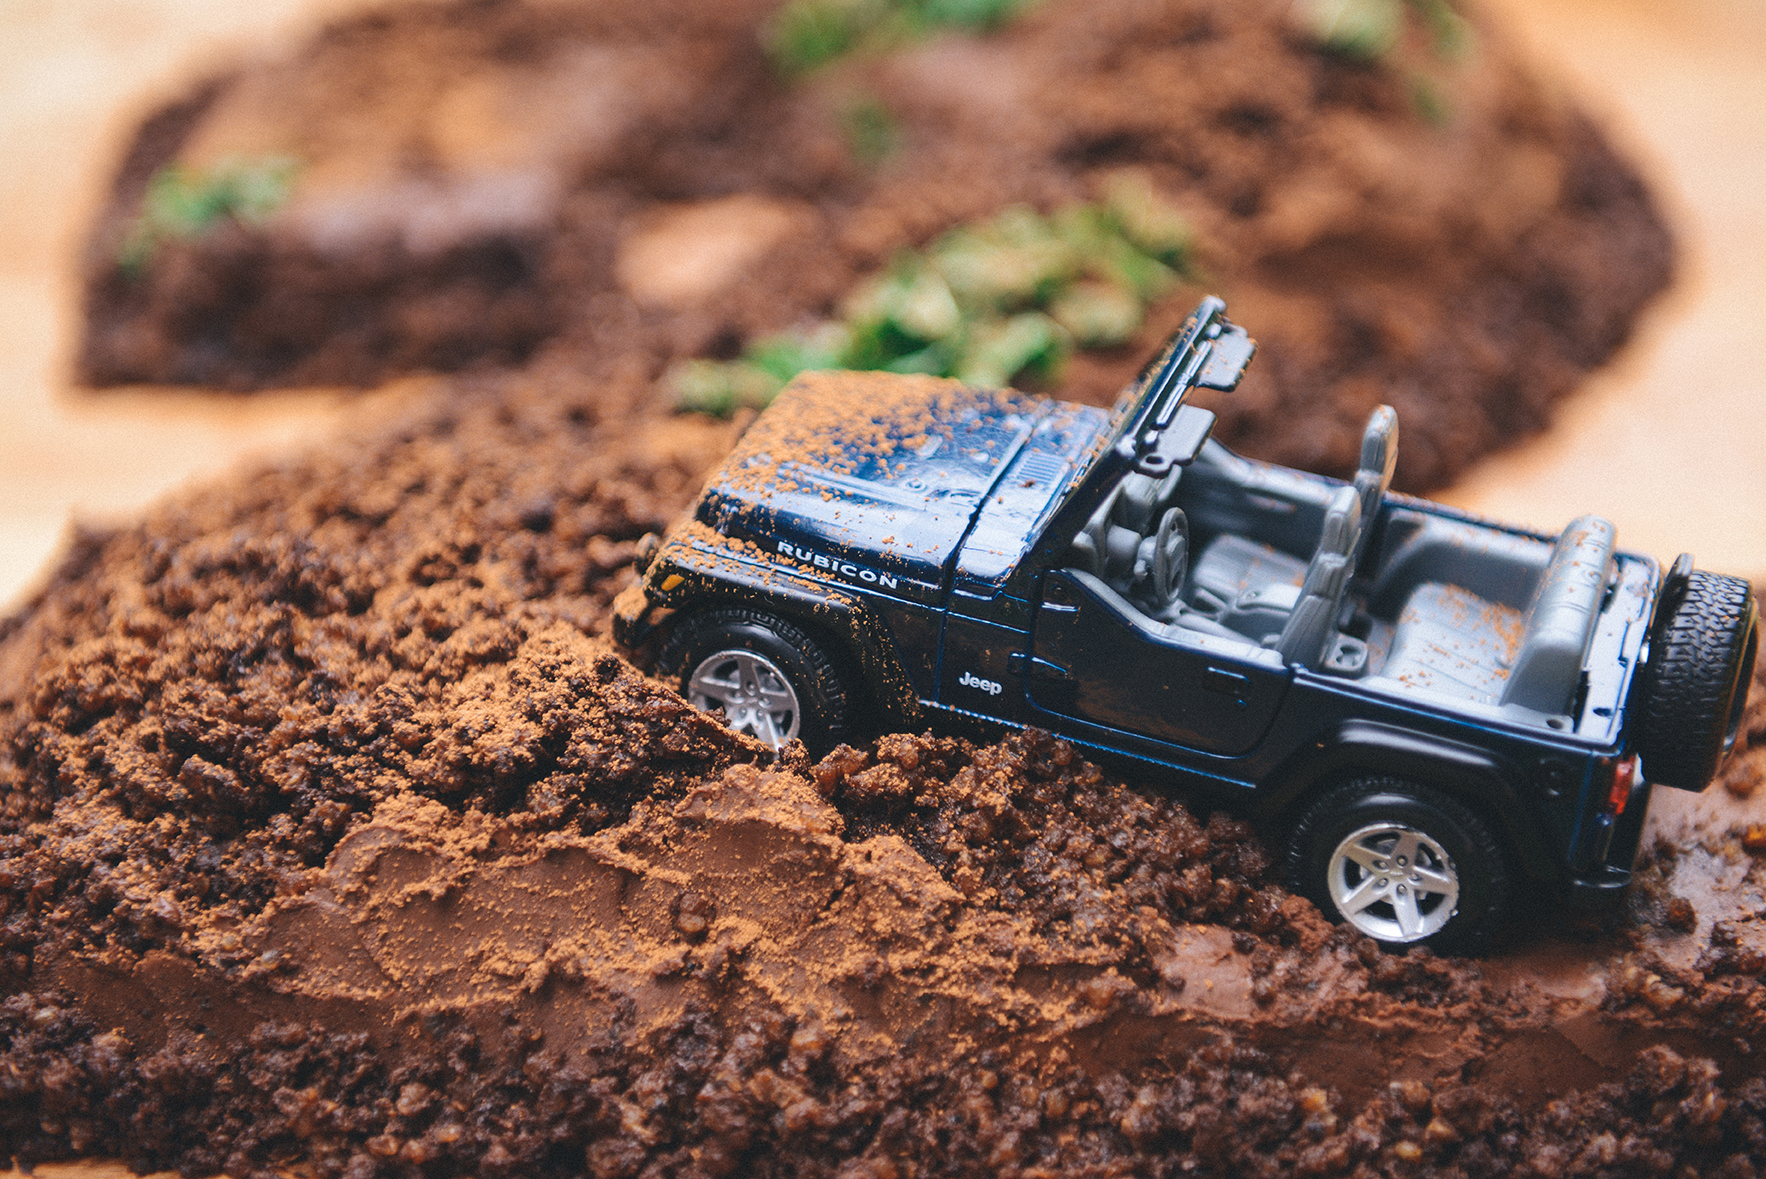 A Gluten Free Jeep Themed Dark Chocolate Quinoa Cake For A 2nd Birthday With The Grains